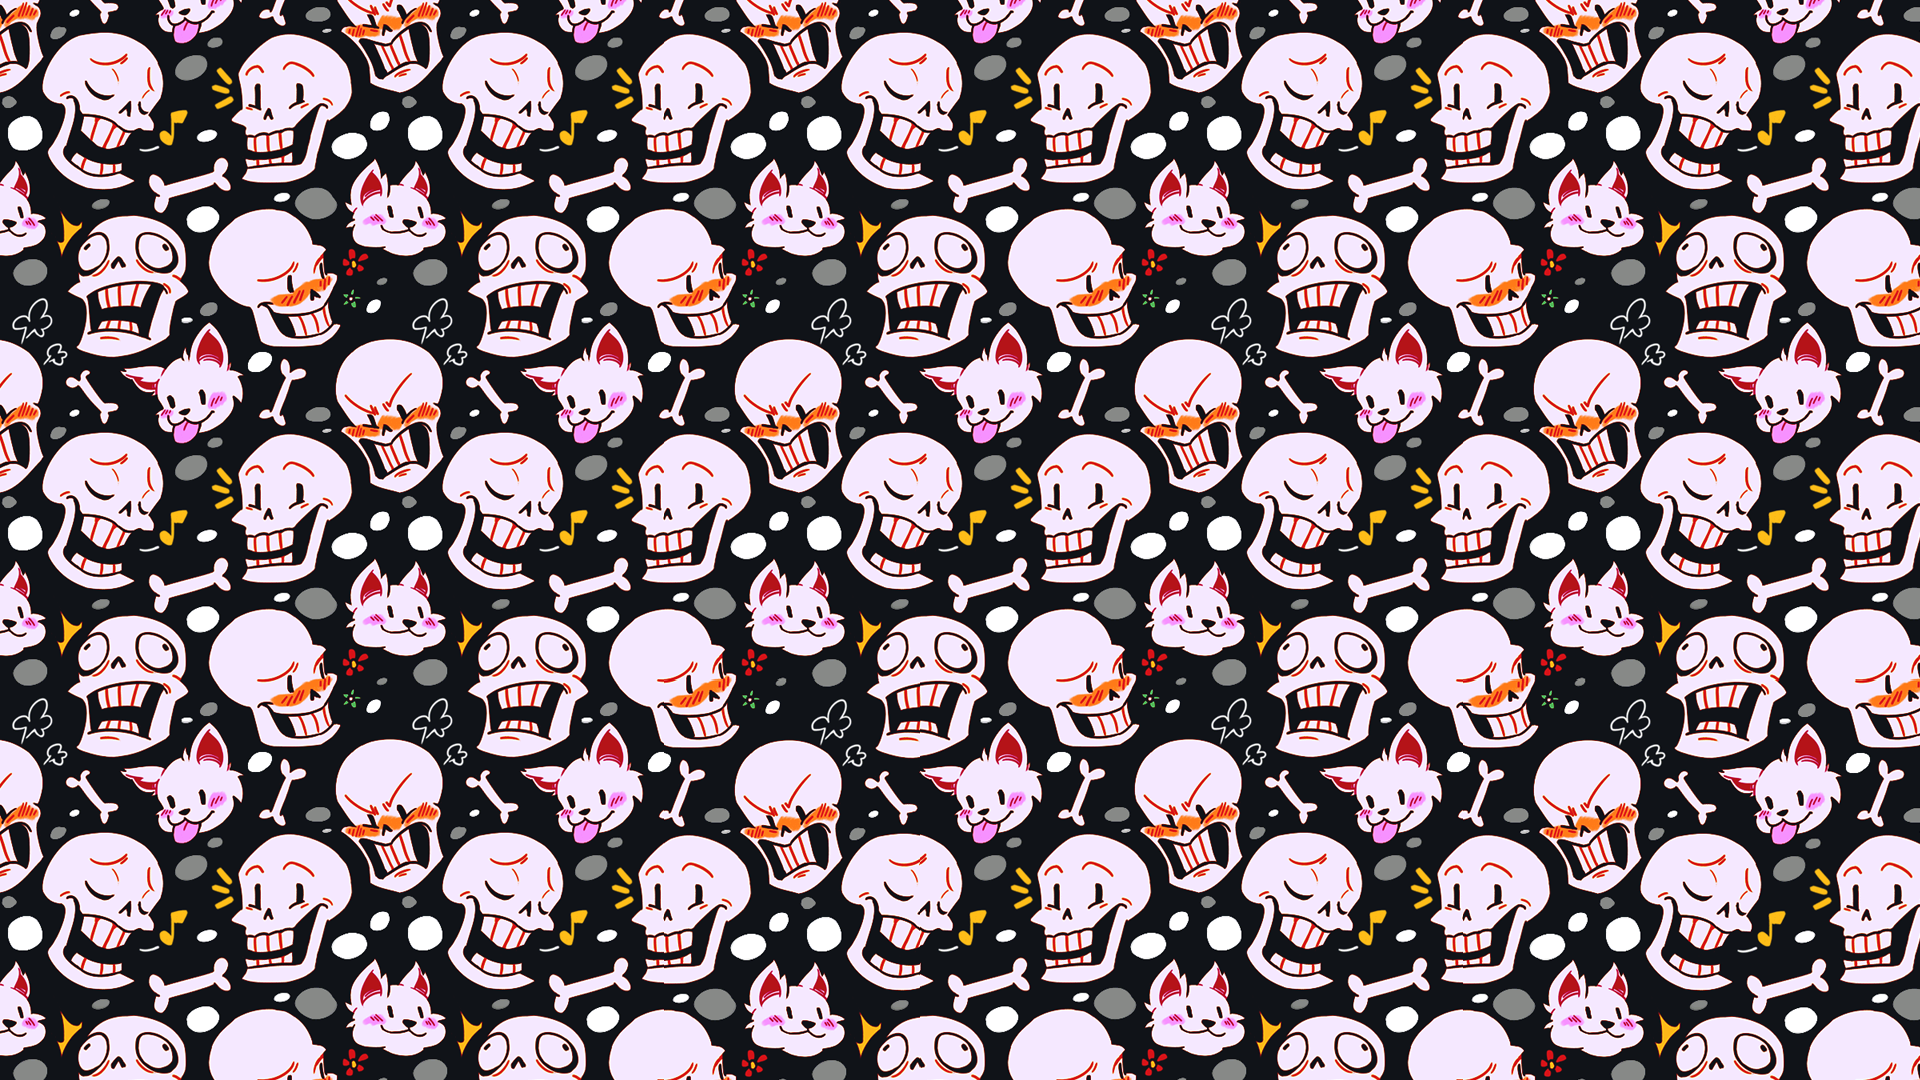 Video Game Undertale Papyrus Undertale Annoying Dog Undertale Wallpaper In 2020 Undertale Desktop Wallpaper Wallpaper Backgrounds